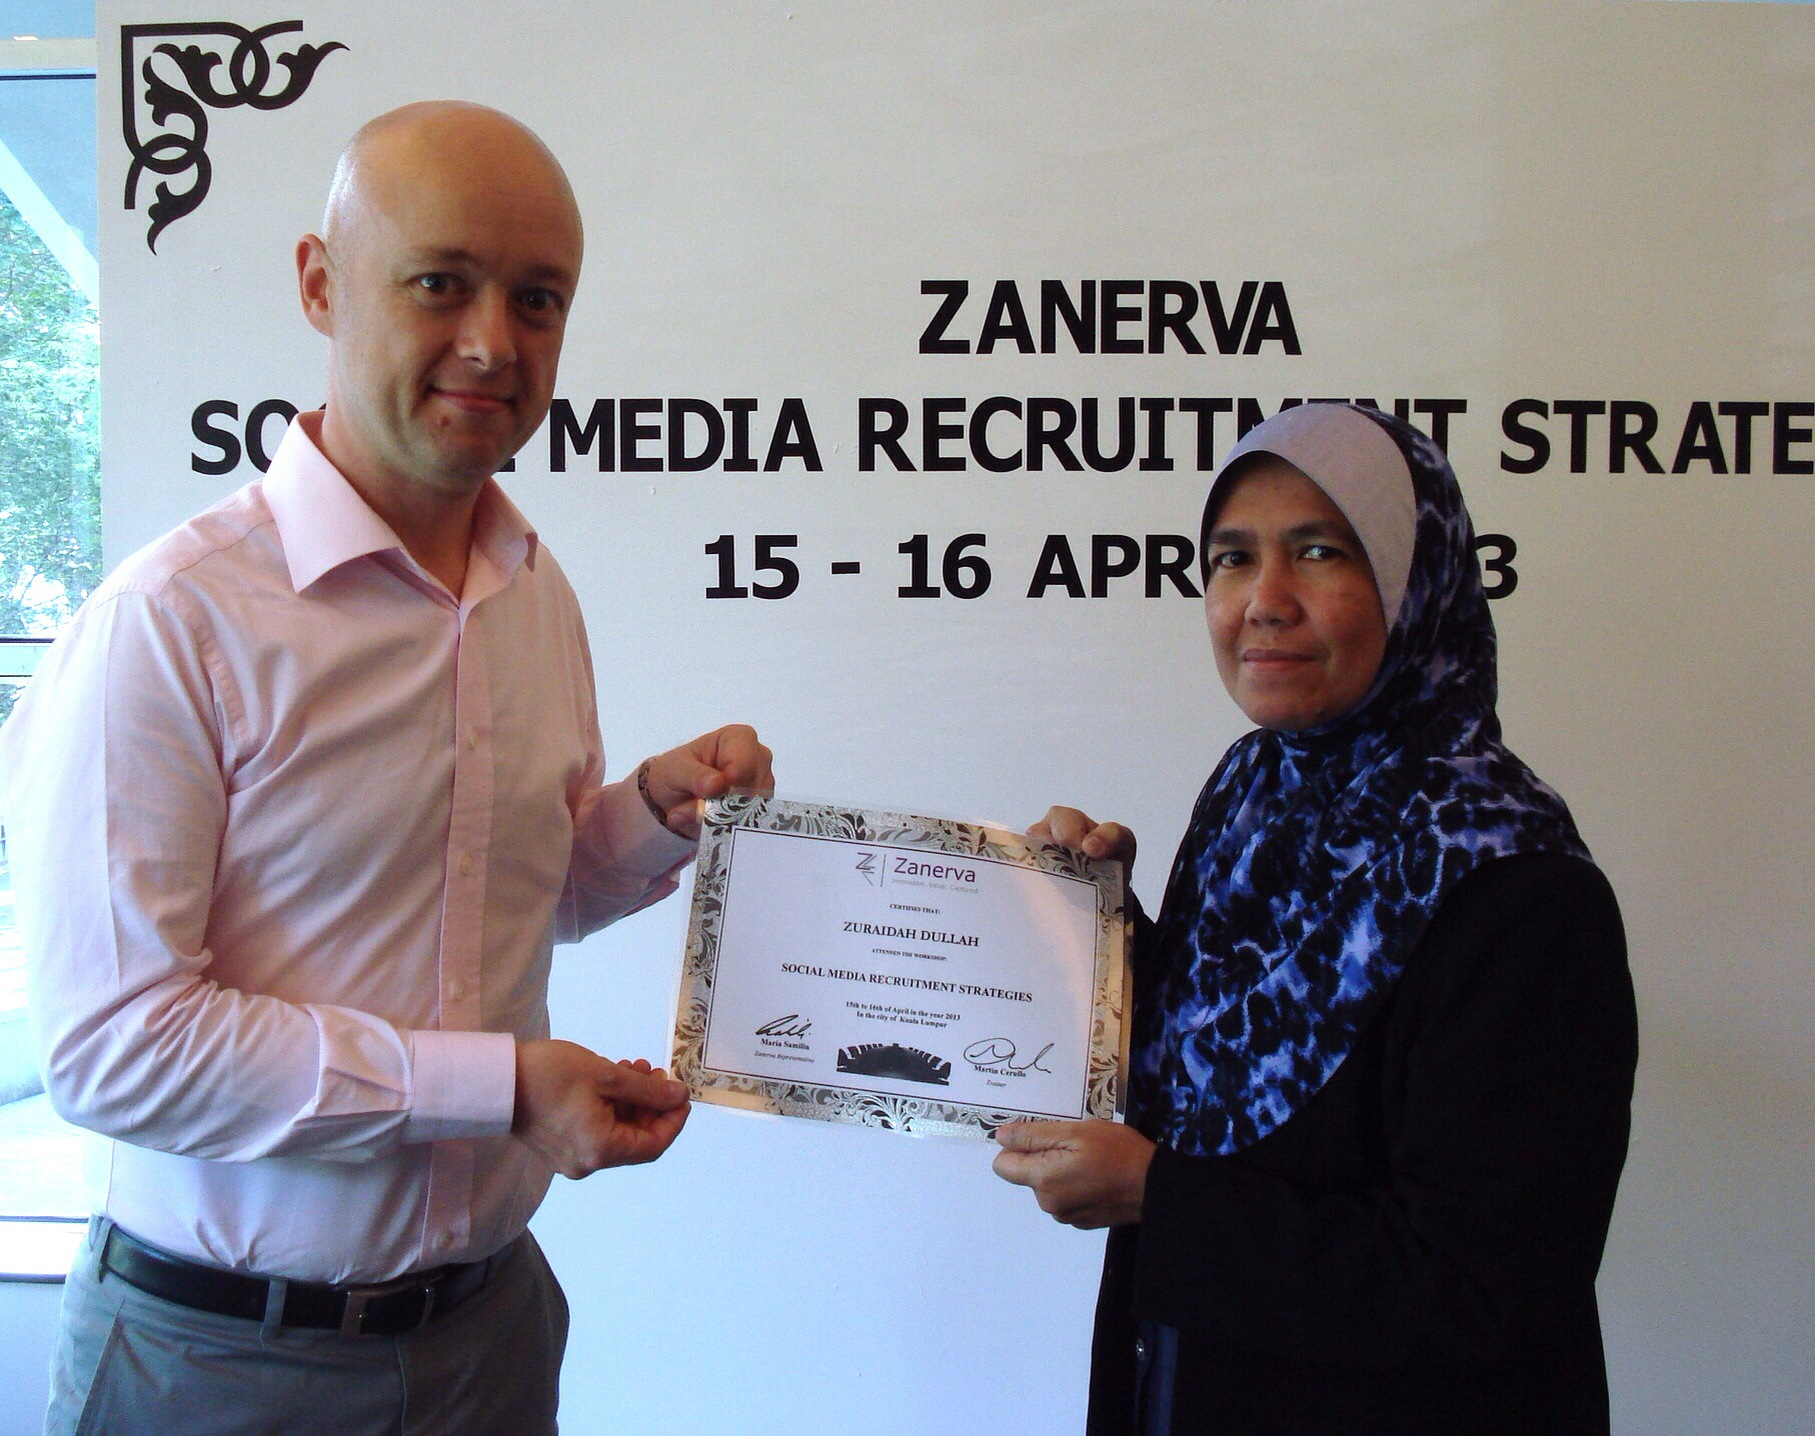 Zuraidah Dullah, Senior Manager (Staffing Management) at Sabah Electricity Sdn Bhd  receiving her certificate of participation for attending the Social Media Recruitment Strategies Workshop in Kuala Lumpur